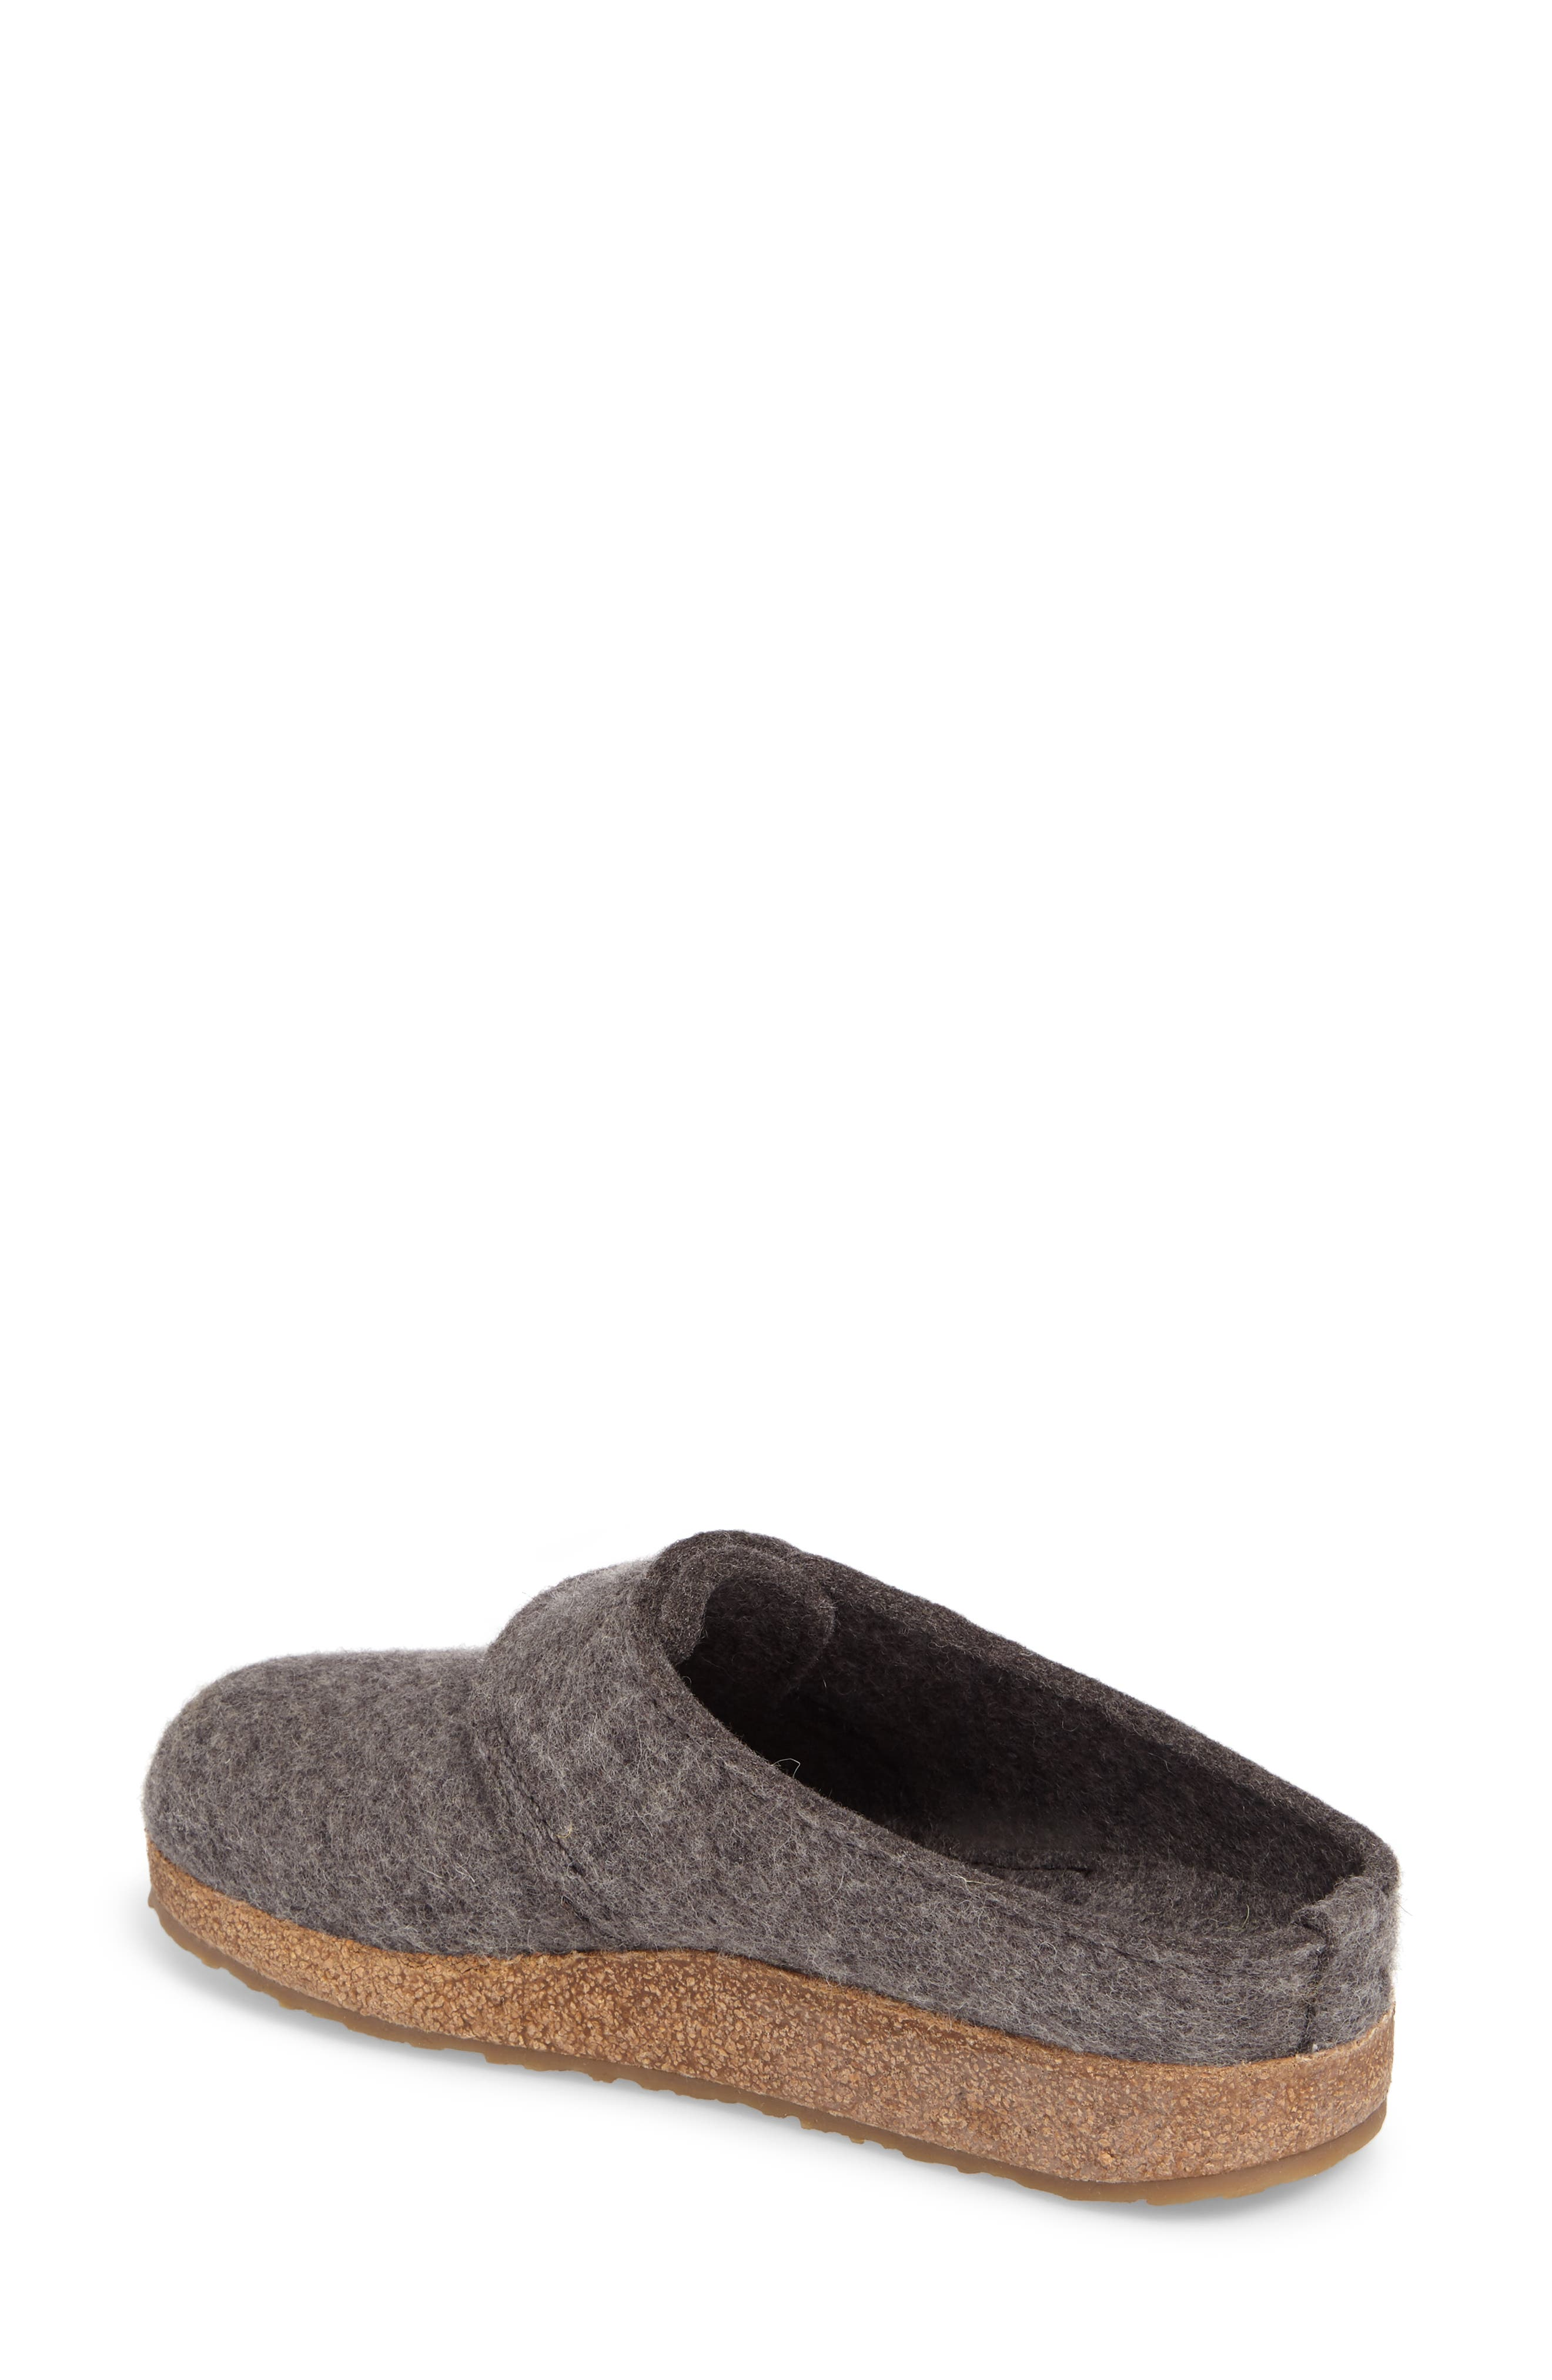 Grizzly Journey Clog Slipper,                             Alternate thumbnail 3, color,